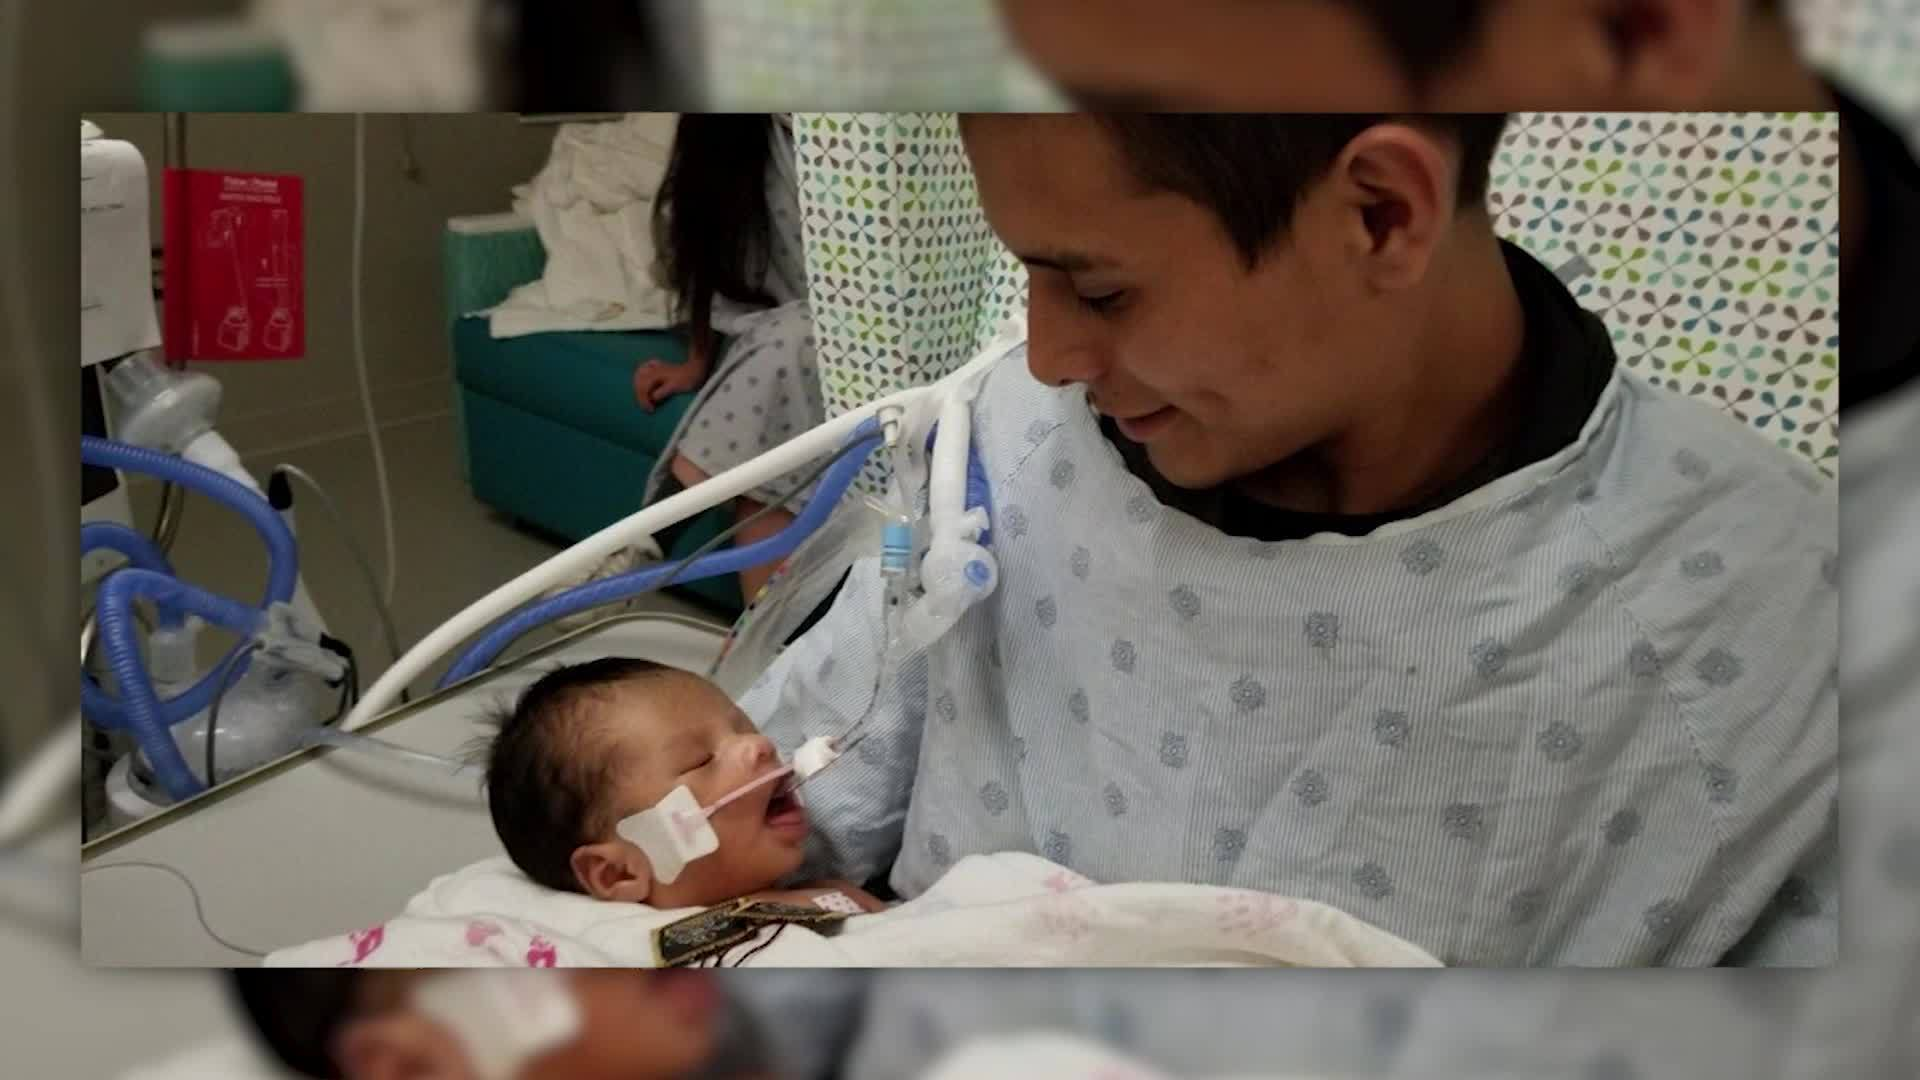 Father_holds_baby_cut_from_missing_teen__6_20190521122628-846653543